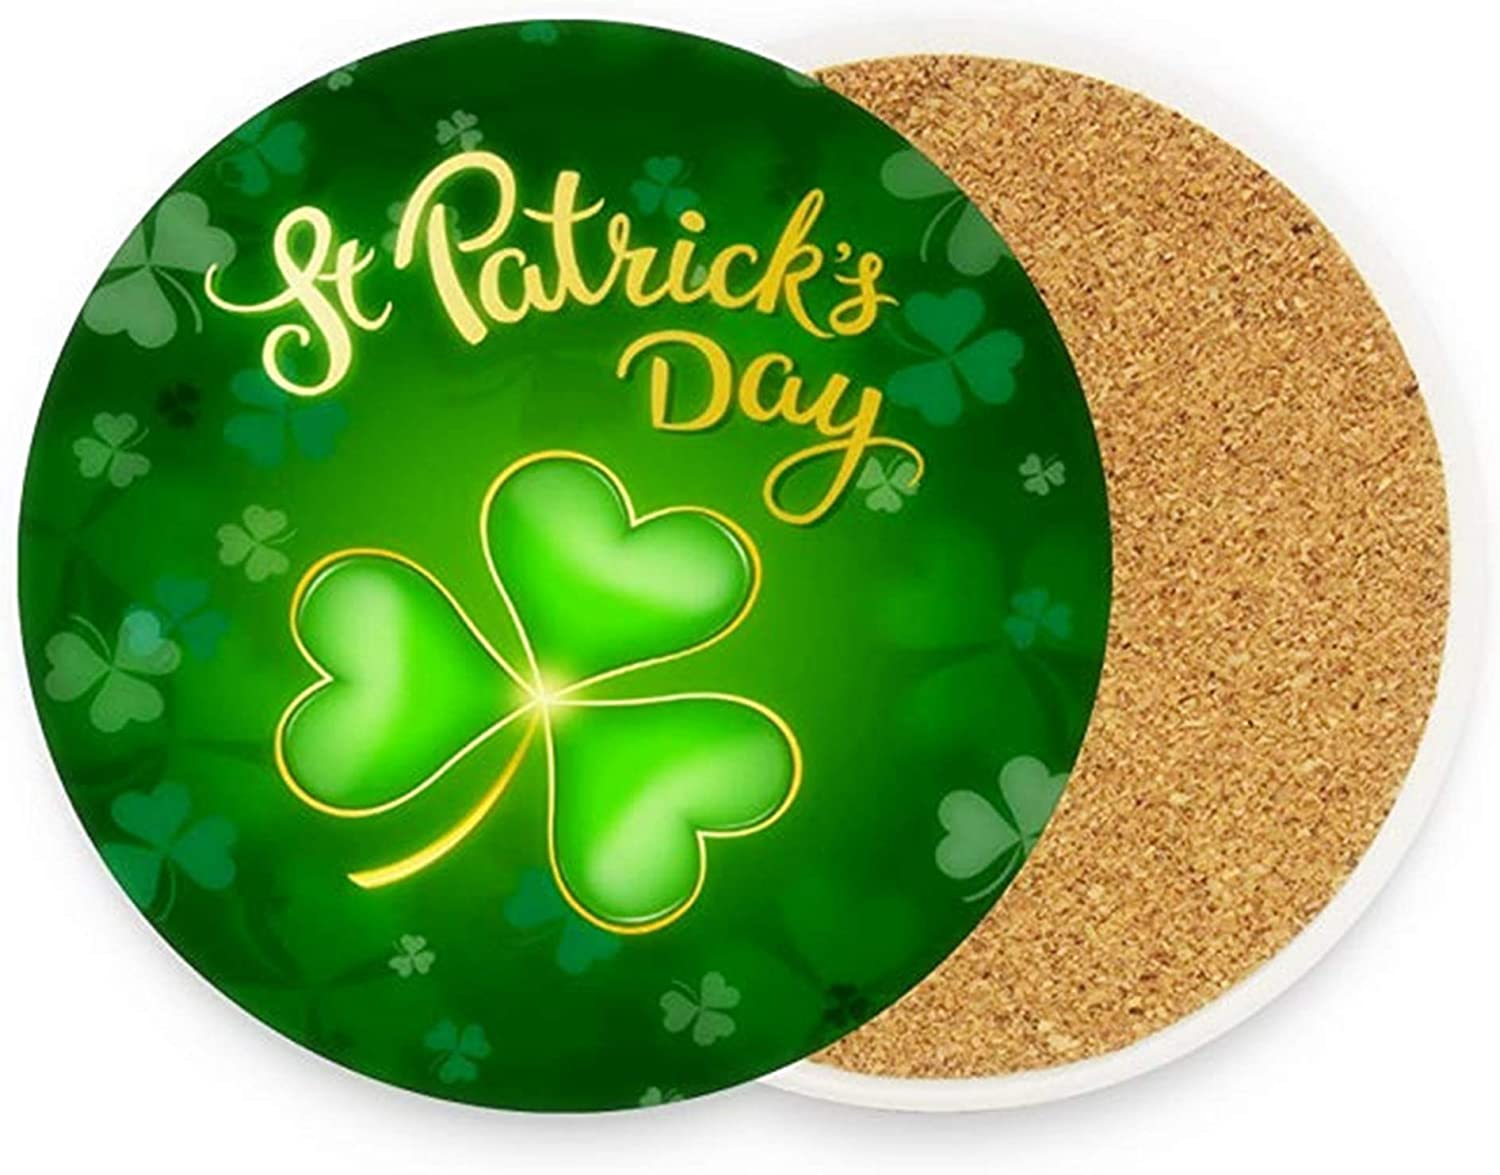 Kcldeci St Patrick's Day Green Clover Leaves Coasters for Drinks 4 Pieces Set Lucky ShamrocksIrish Leprechaun Bar Cup Coaster Coffee Mug Glass Pad Tabletop for Table Kitchen Dining Home Decor